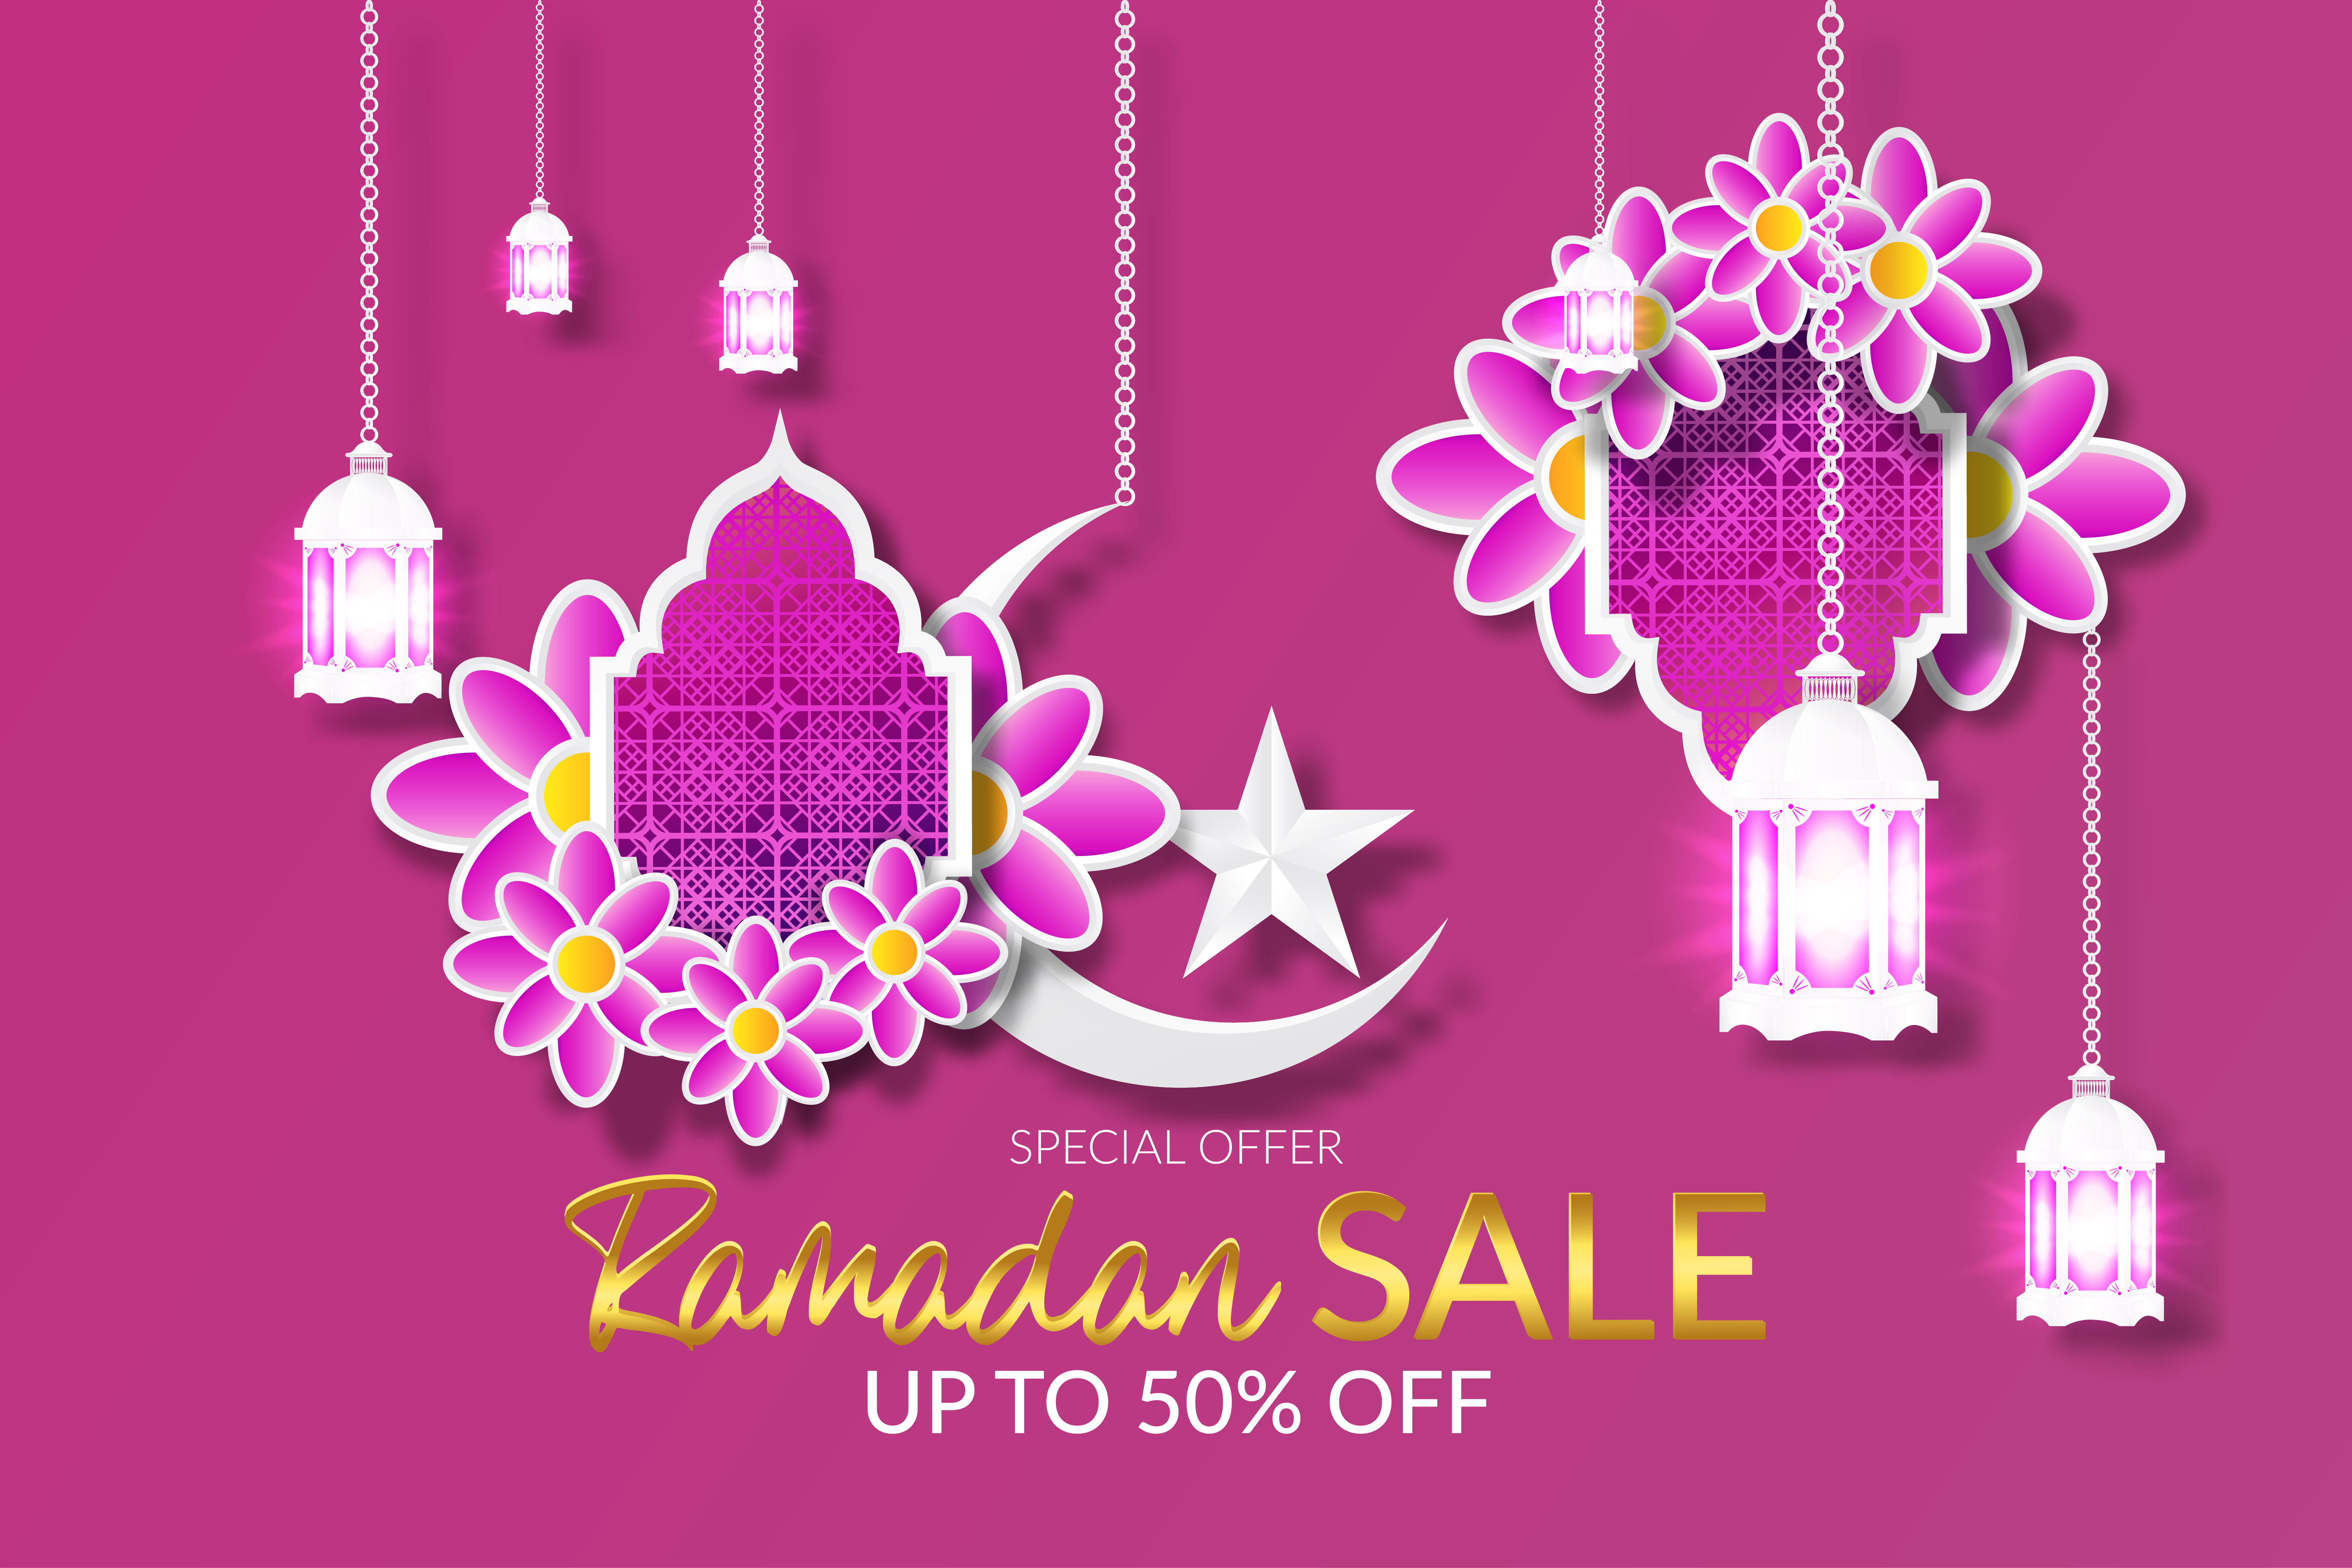 Download Free Ramadan Sale Islamic Special Offer Graphic By Ngabeivector for Cricut Explore, Silhouette and other cutting machines.